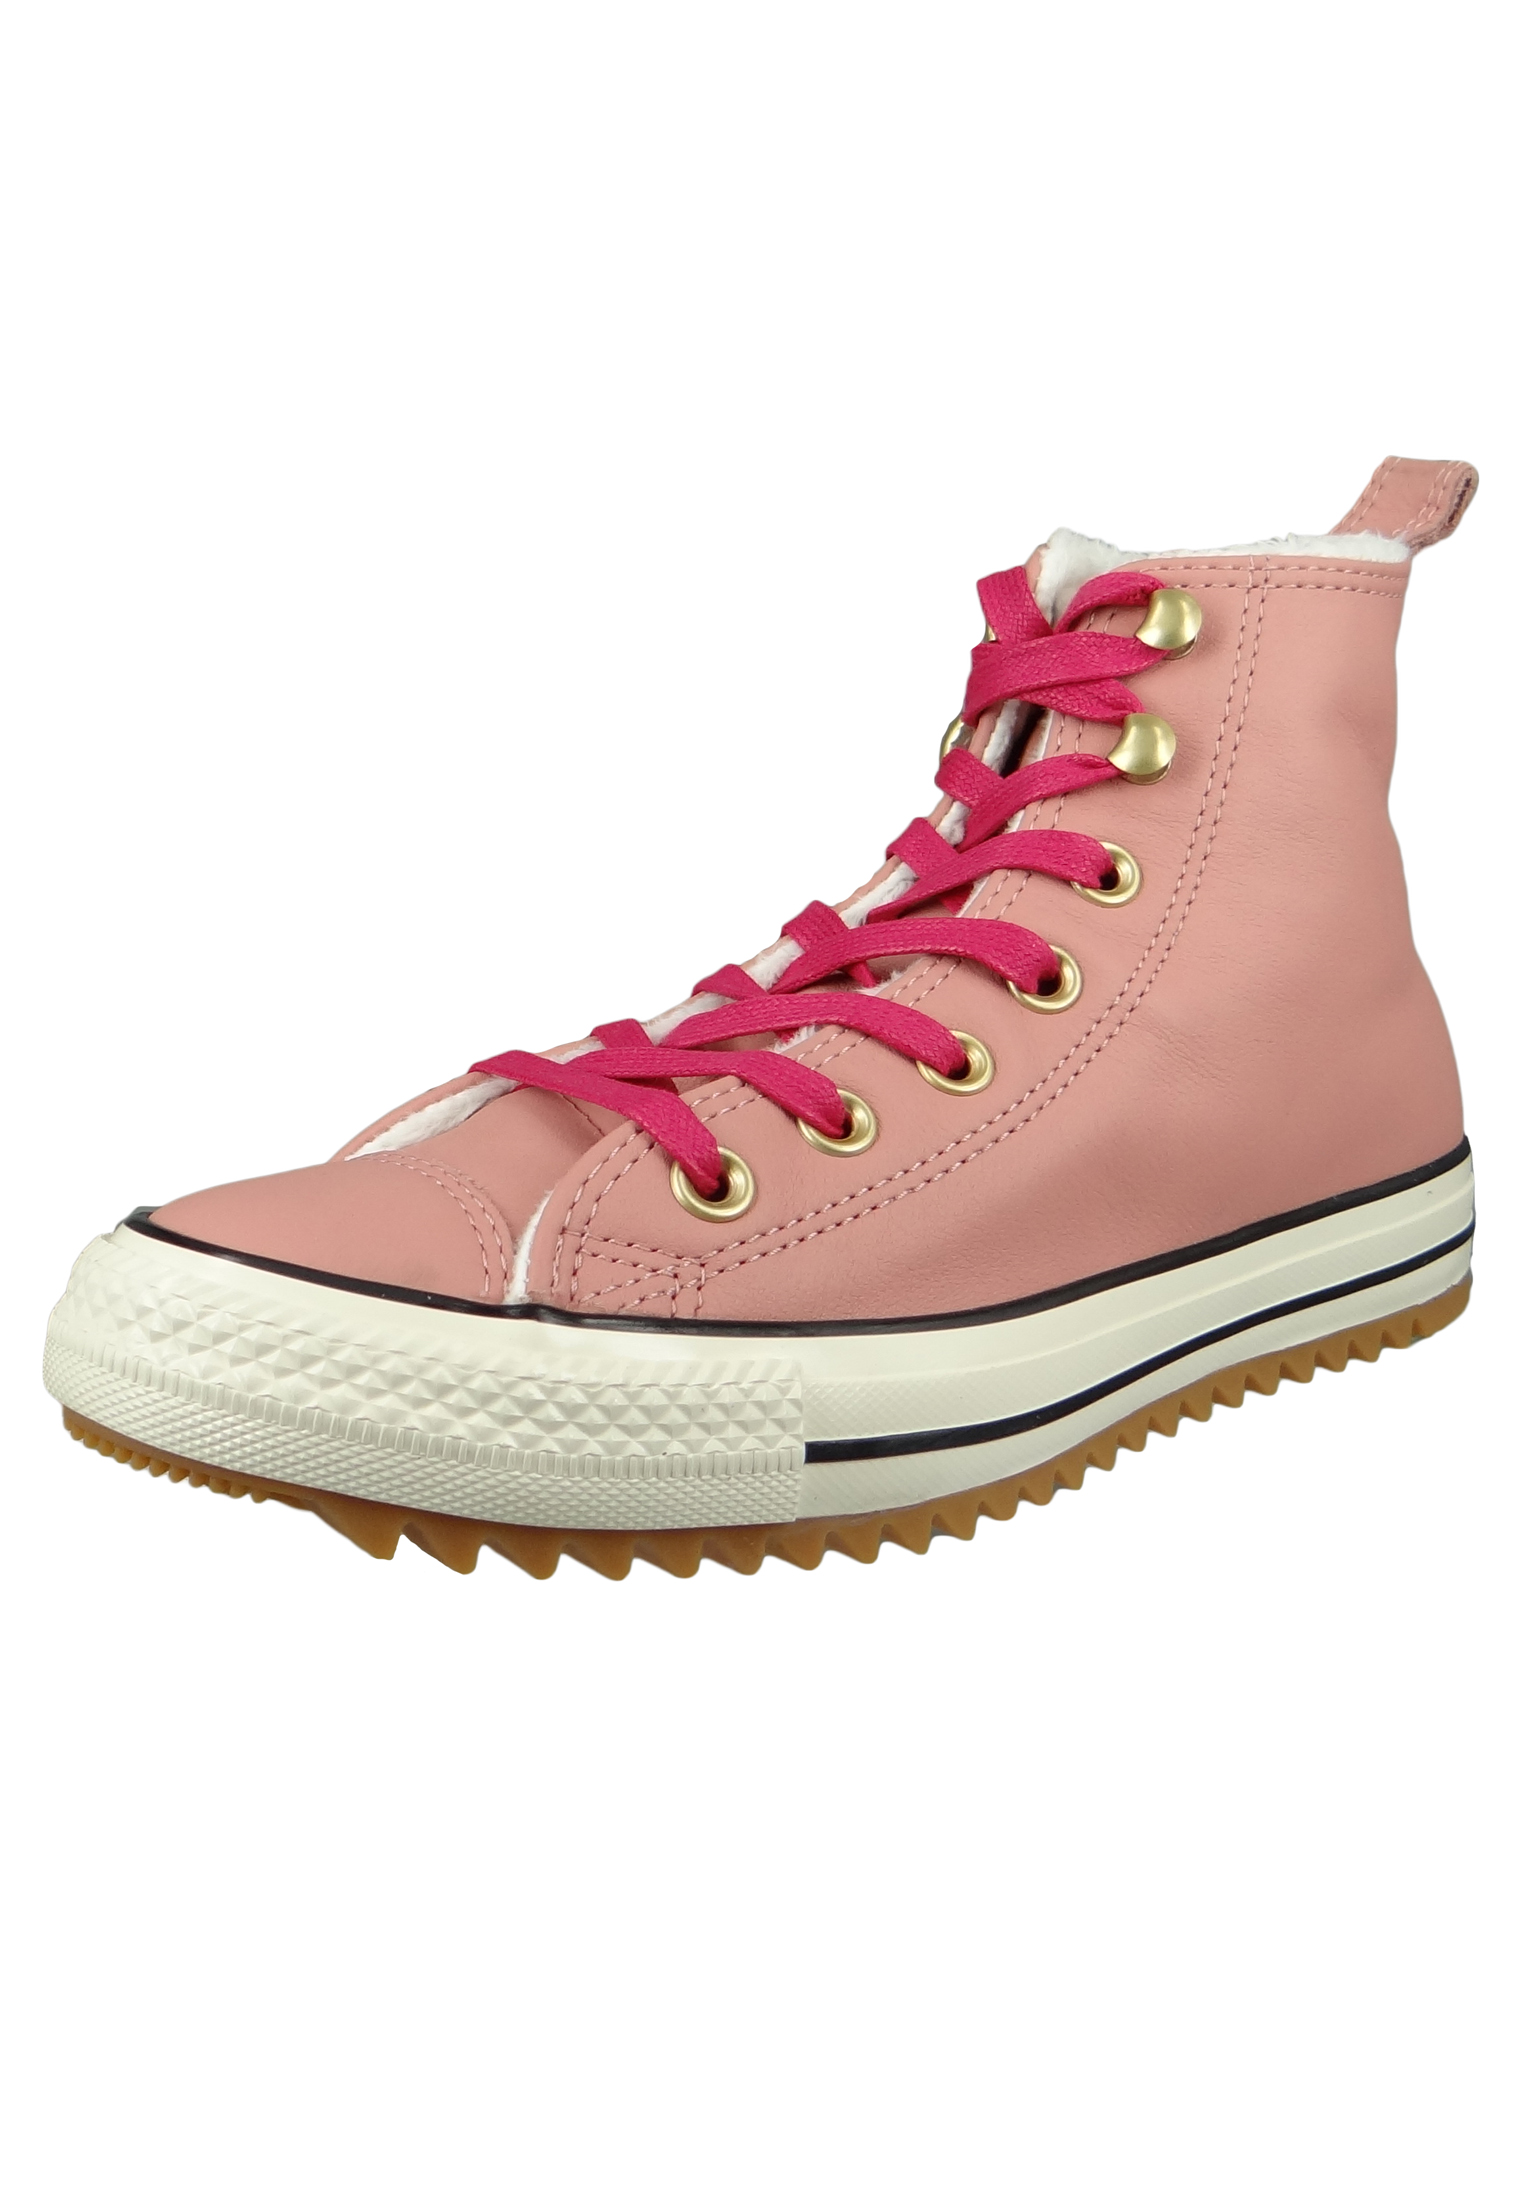 994fc5a4138b8 Converse Chucks 162477C Pink Leder Chuck Taylor All Star Hiker Boot Rust  Pink Pink Pop